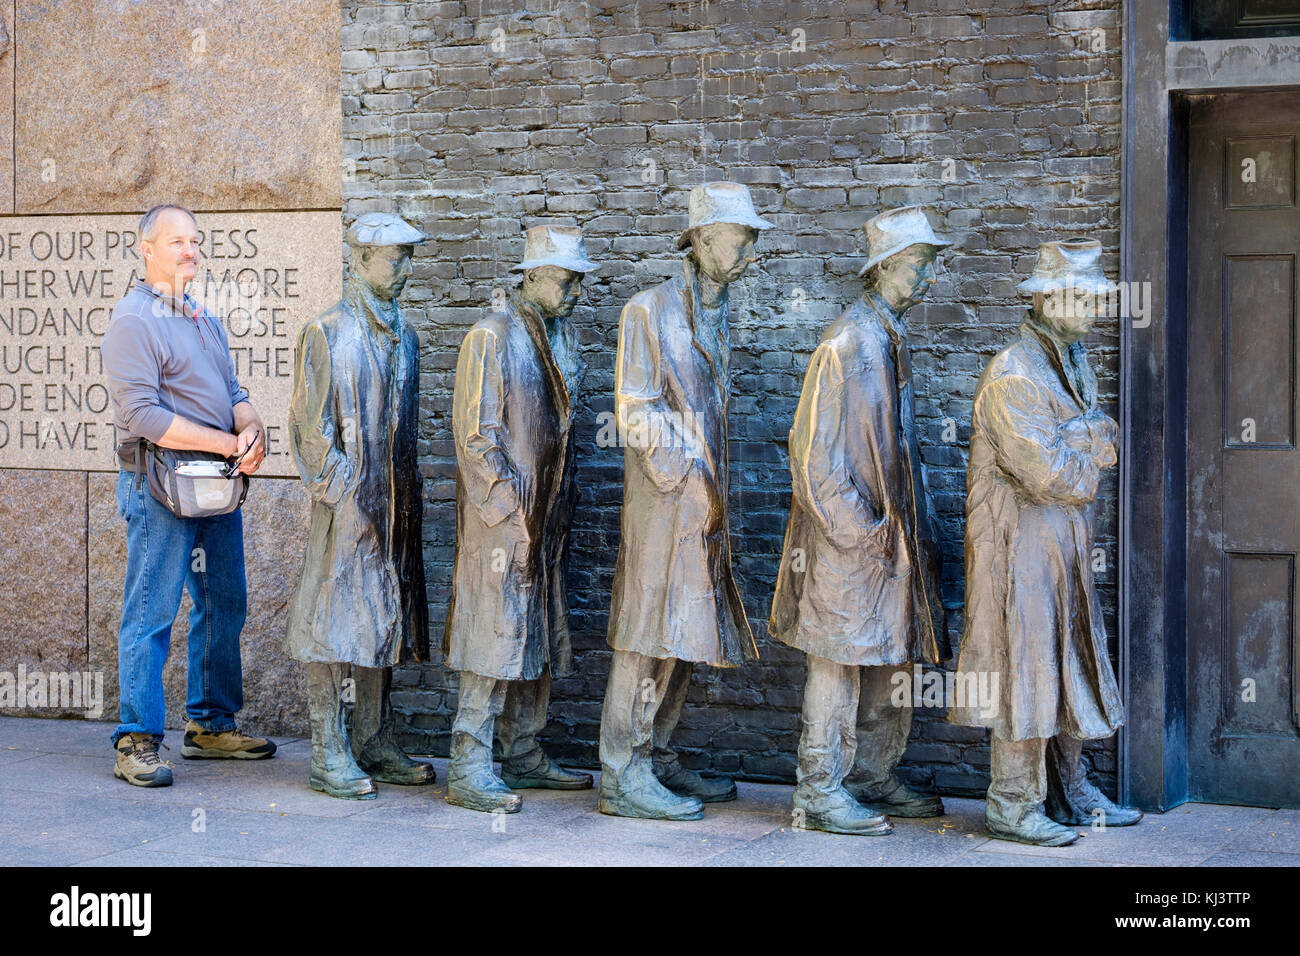 Male tourist posing for a photo at Bread Line, sculpture by George Segal, Room Two of Franklin Delano Roosevelt - Stock Image